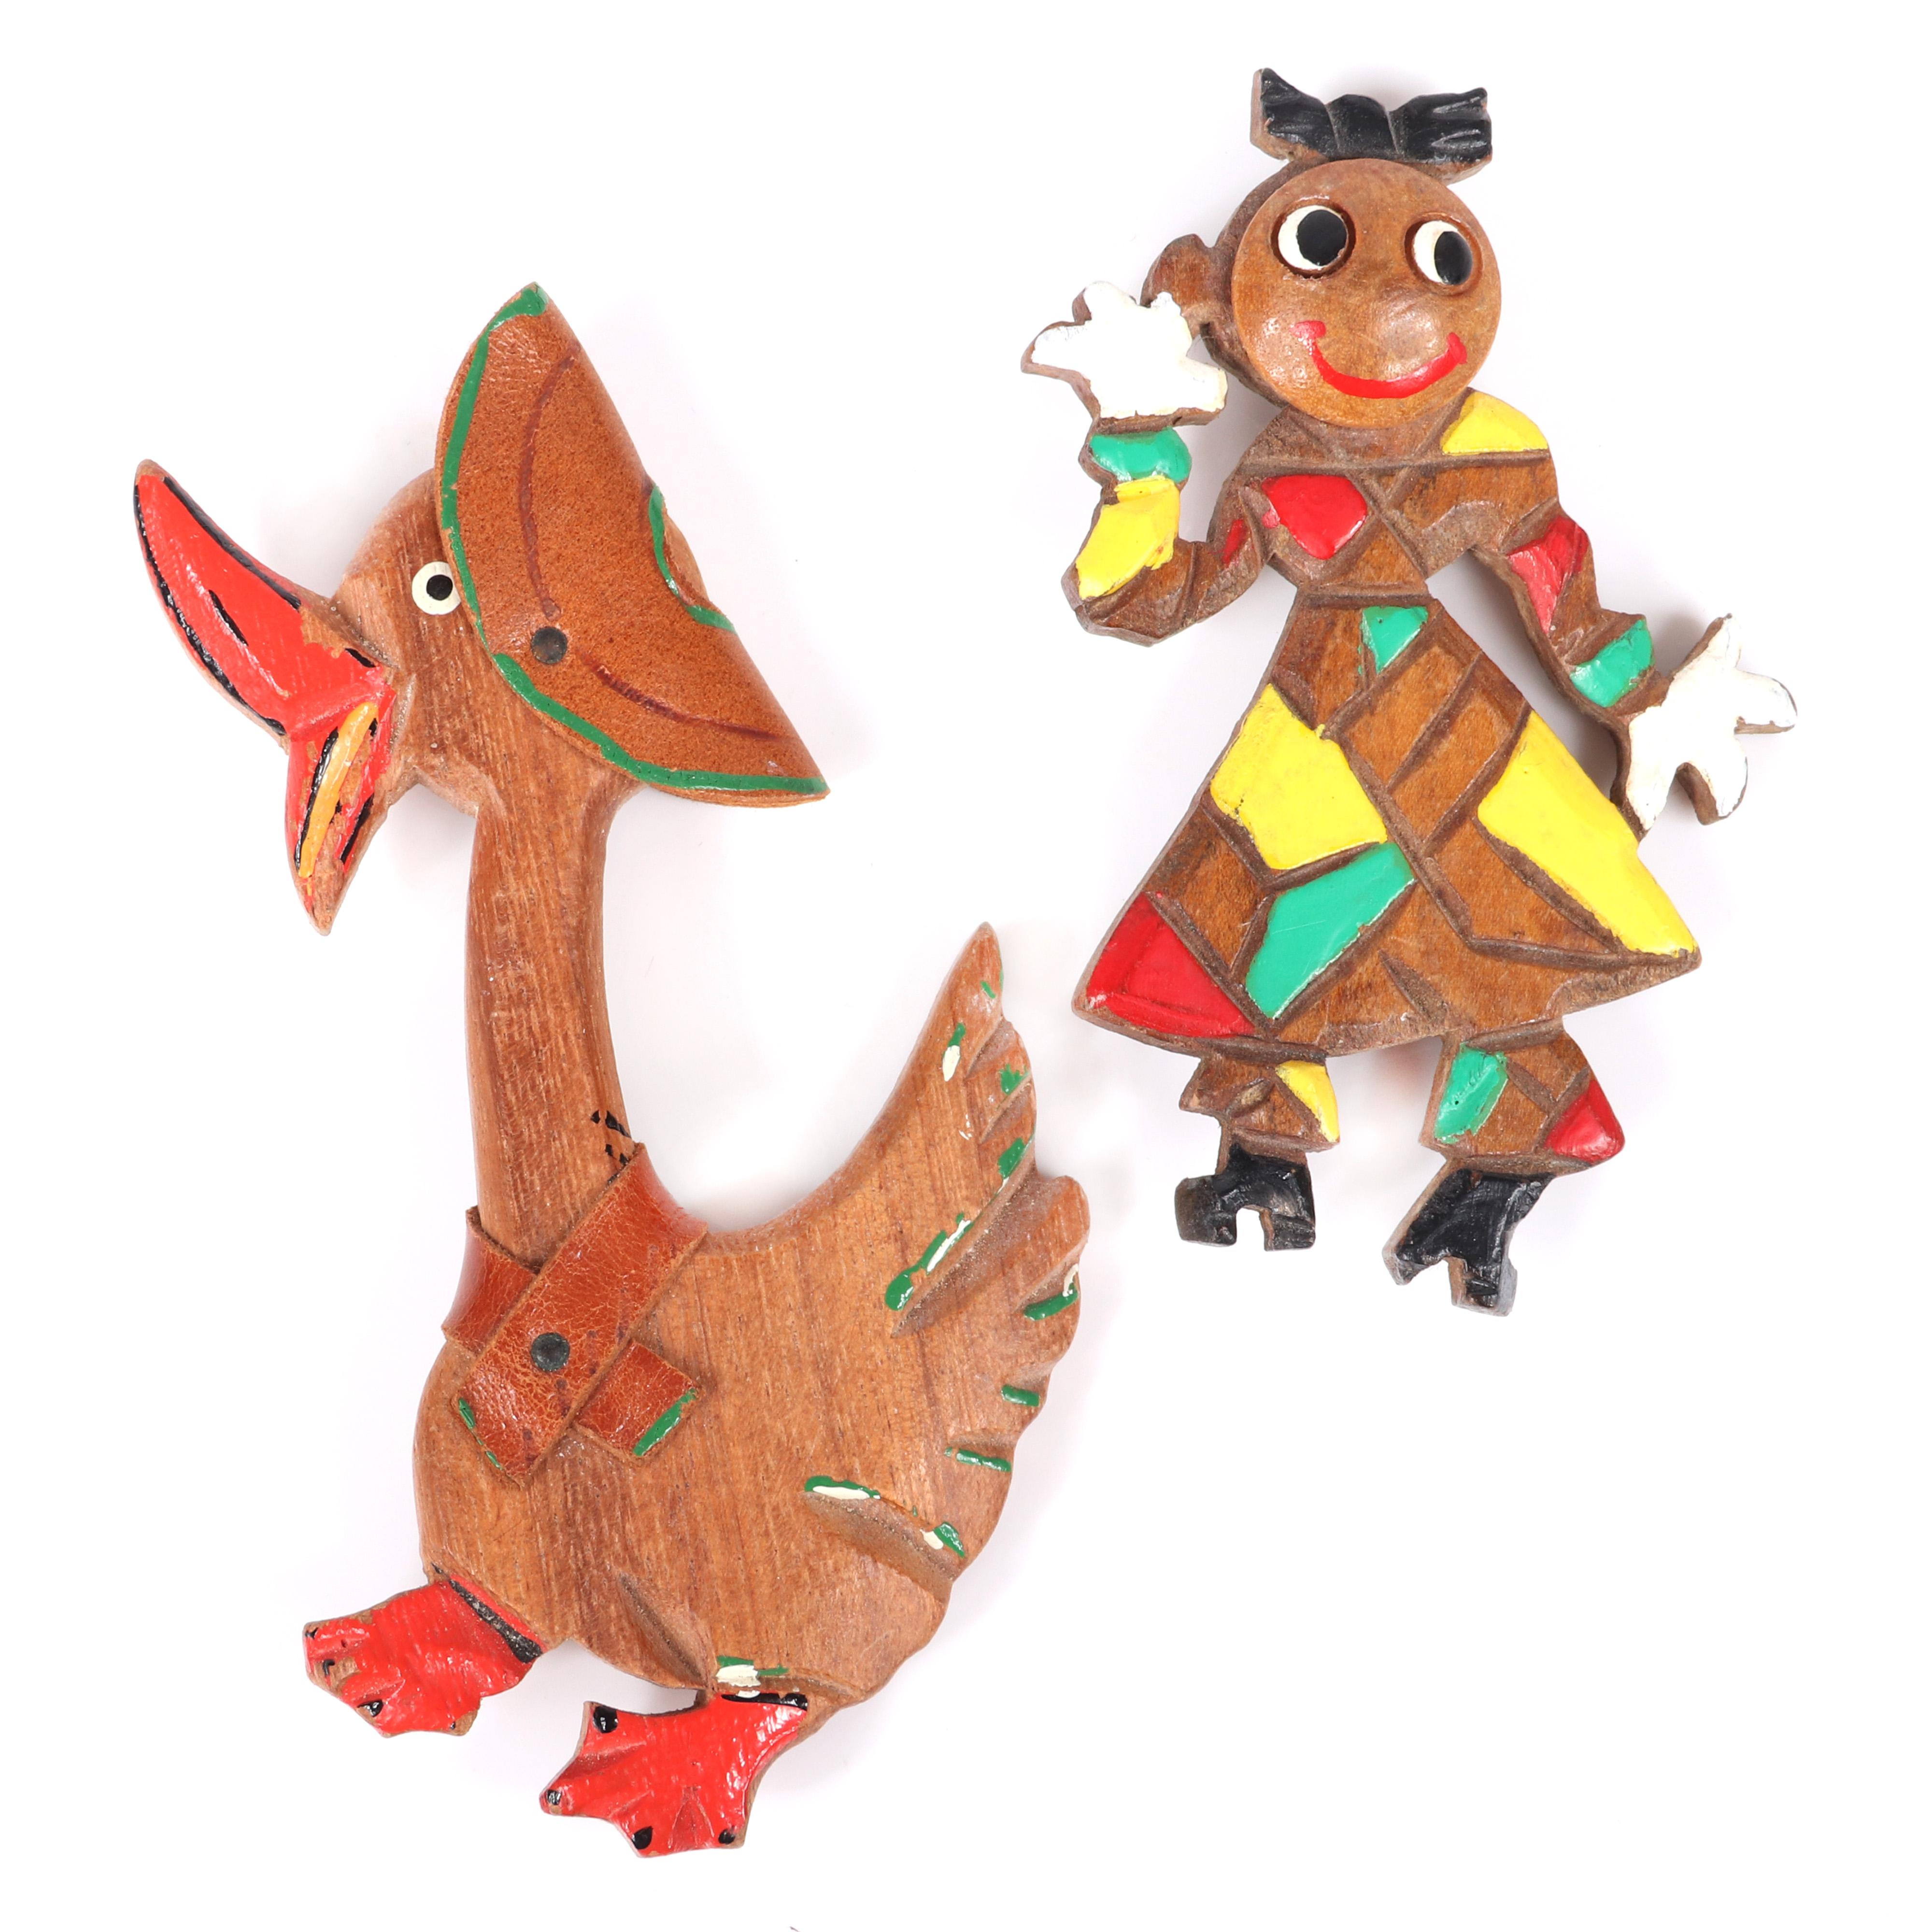 "Two vintage carved and painted wood whimsical brooches: large quacking duck with leather hat and collar and dancing rag doll figural. 4 1/4"" x 3"" (duck)"